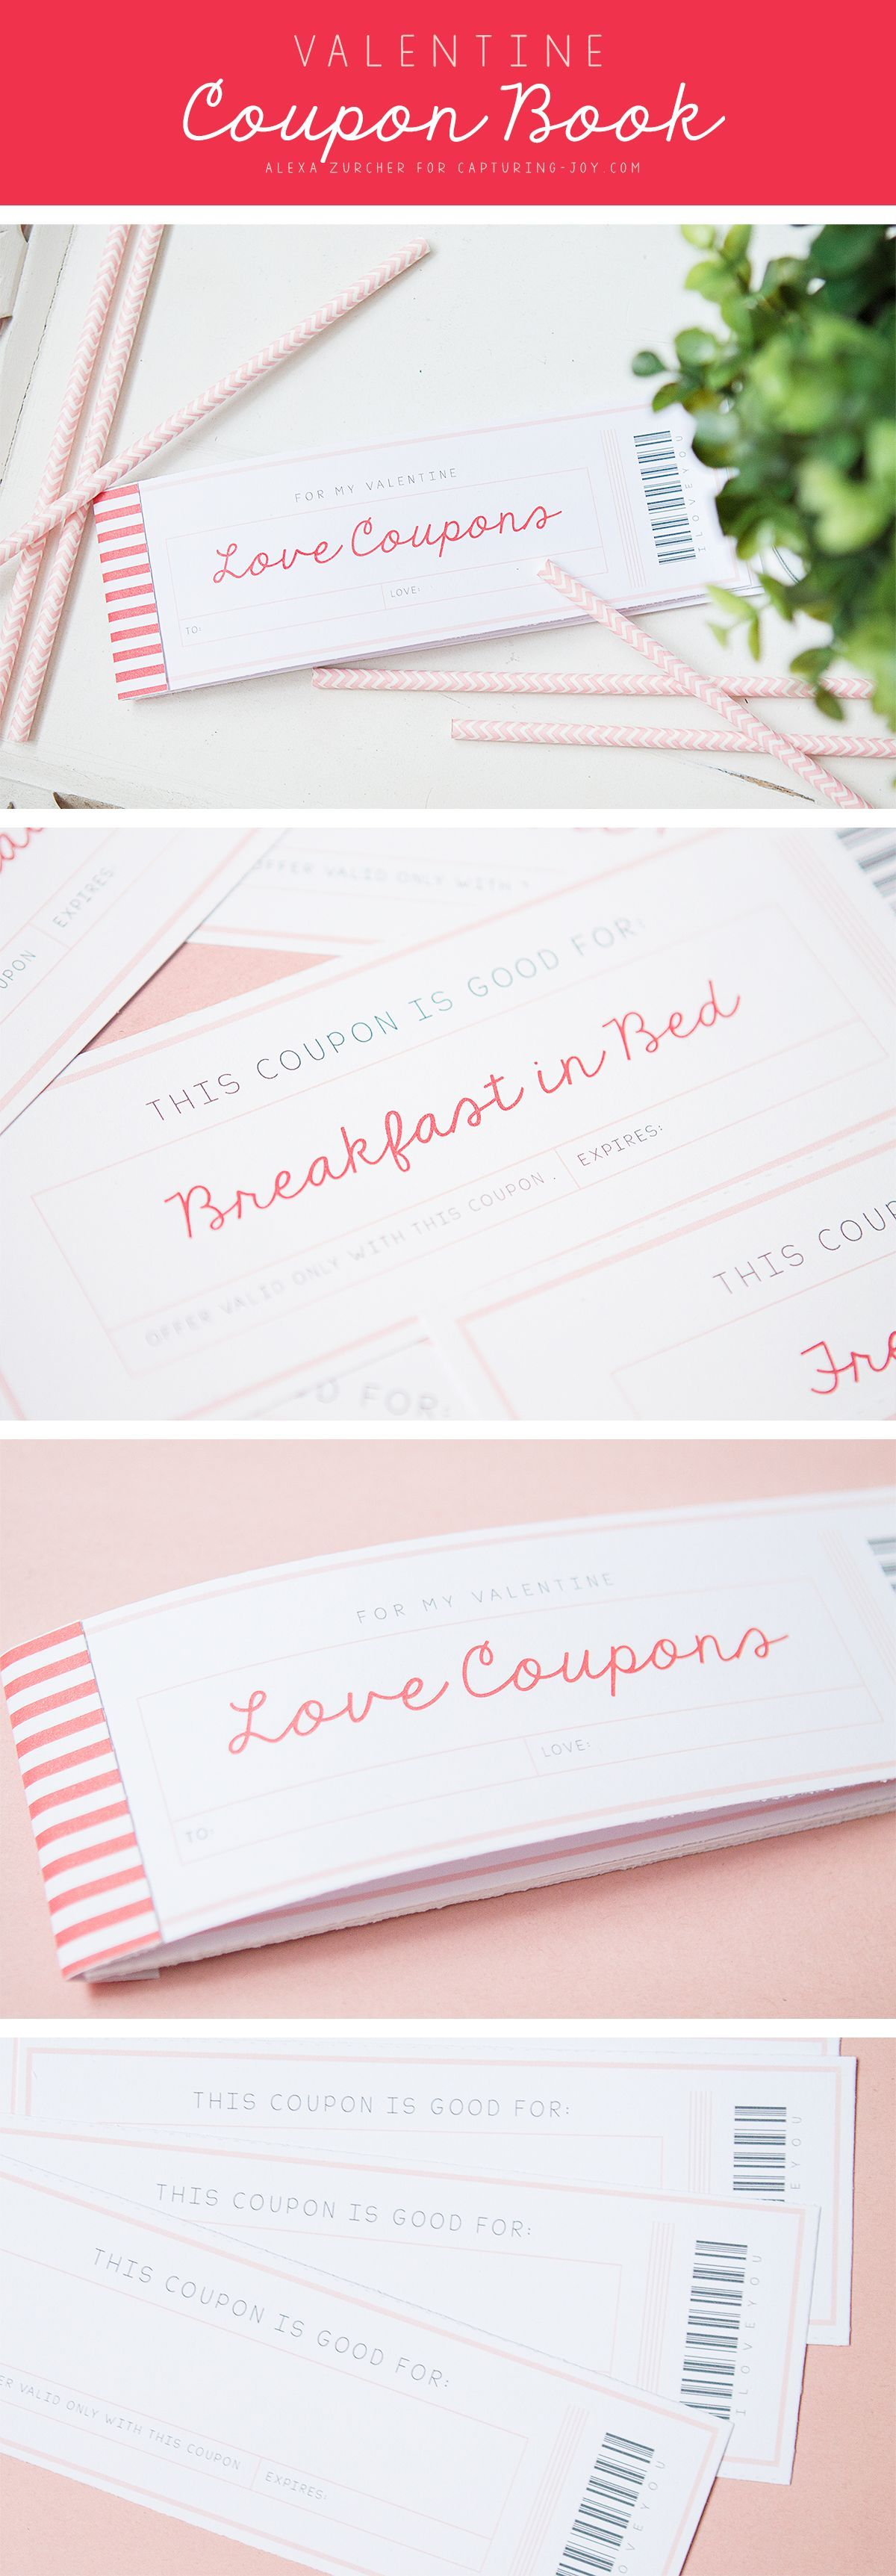 Coupon Cadeau à Imprimer Valentine Coupon Book Printable Naughty Coupon